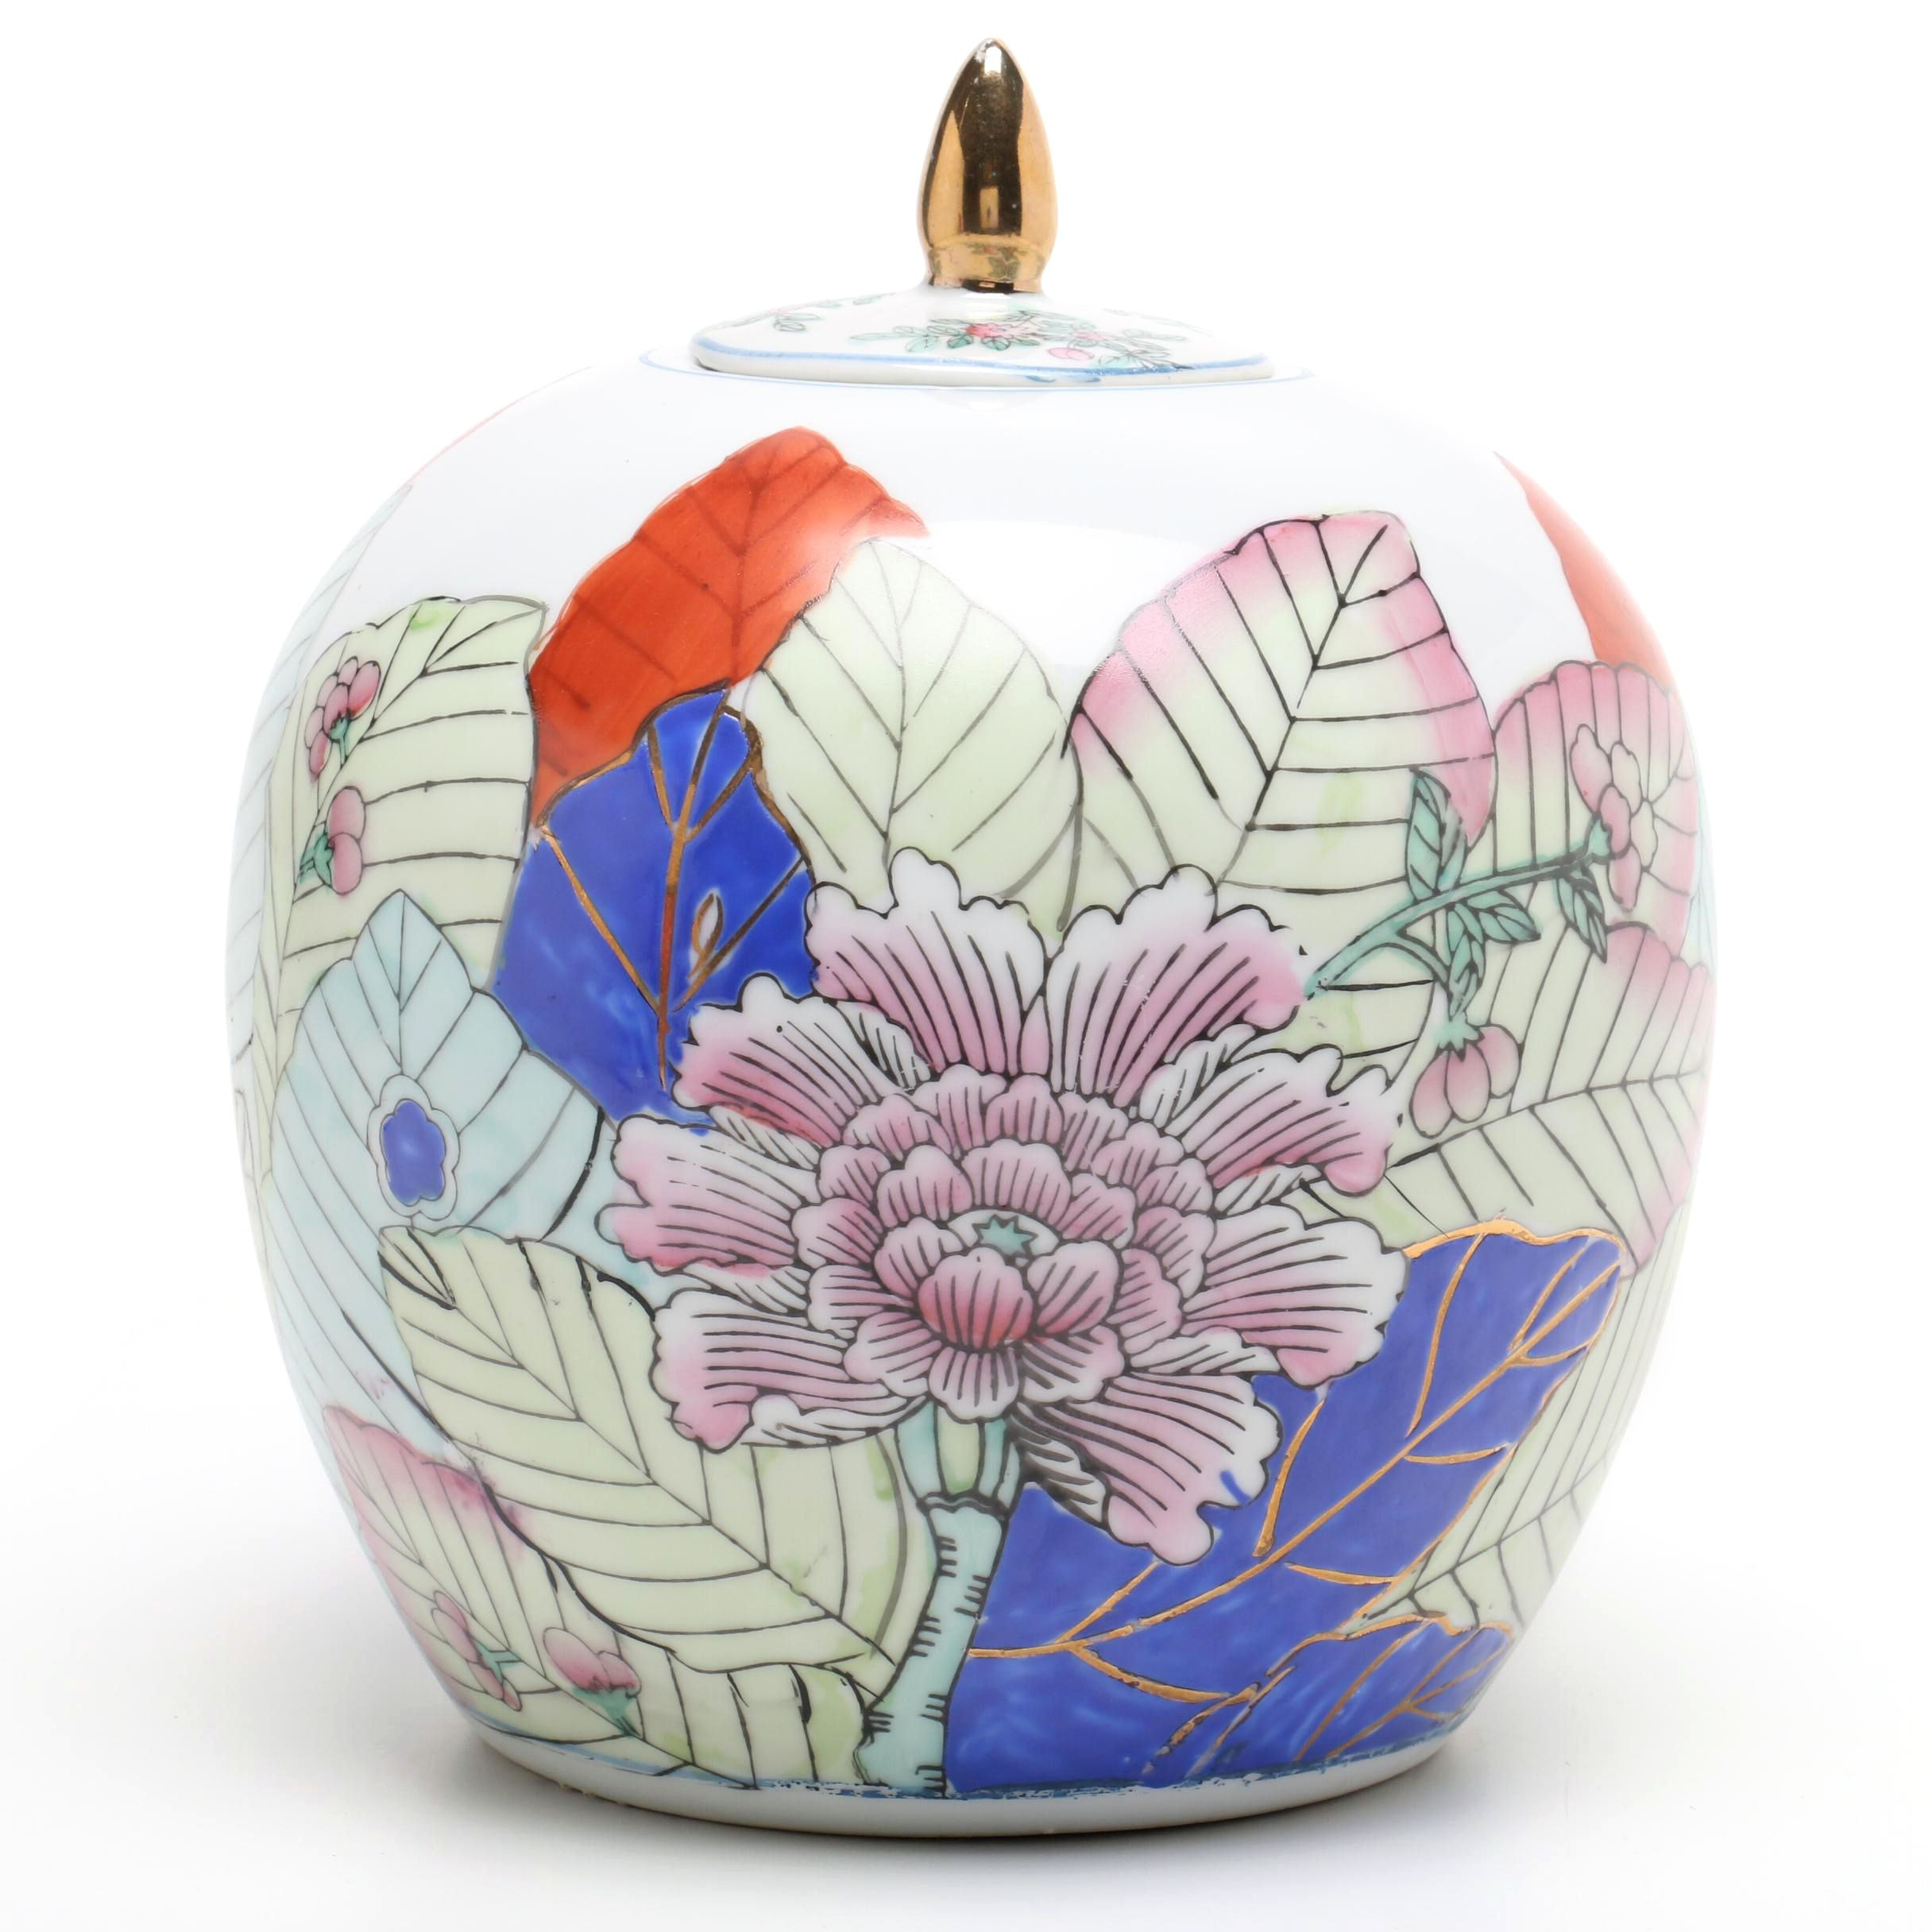 Chinese Tobacco Leaf Patterned Vase with a Married Lid